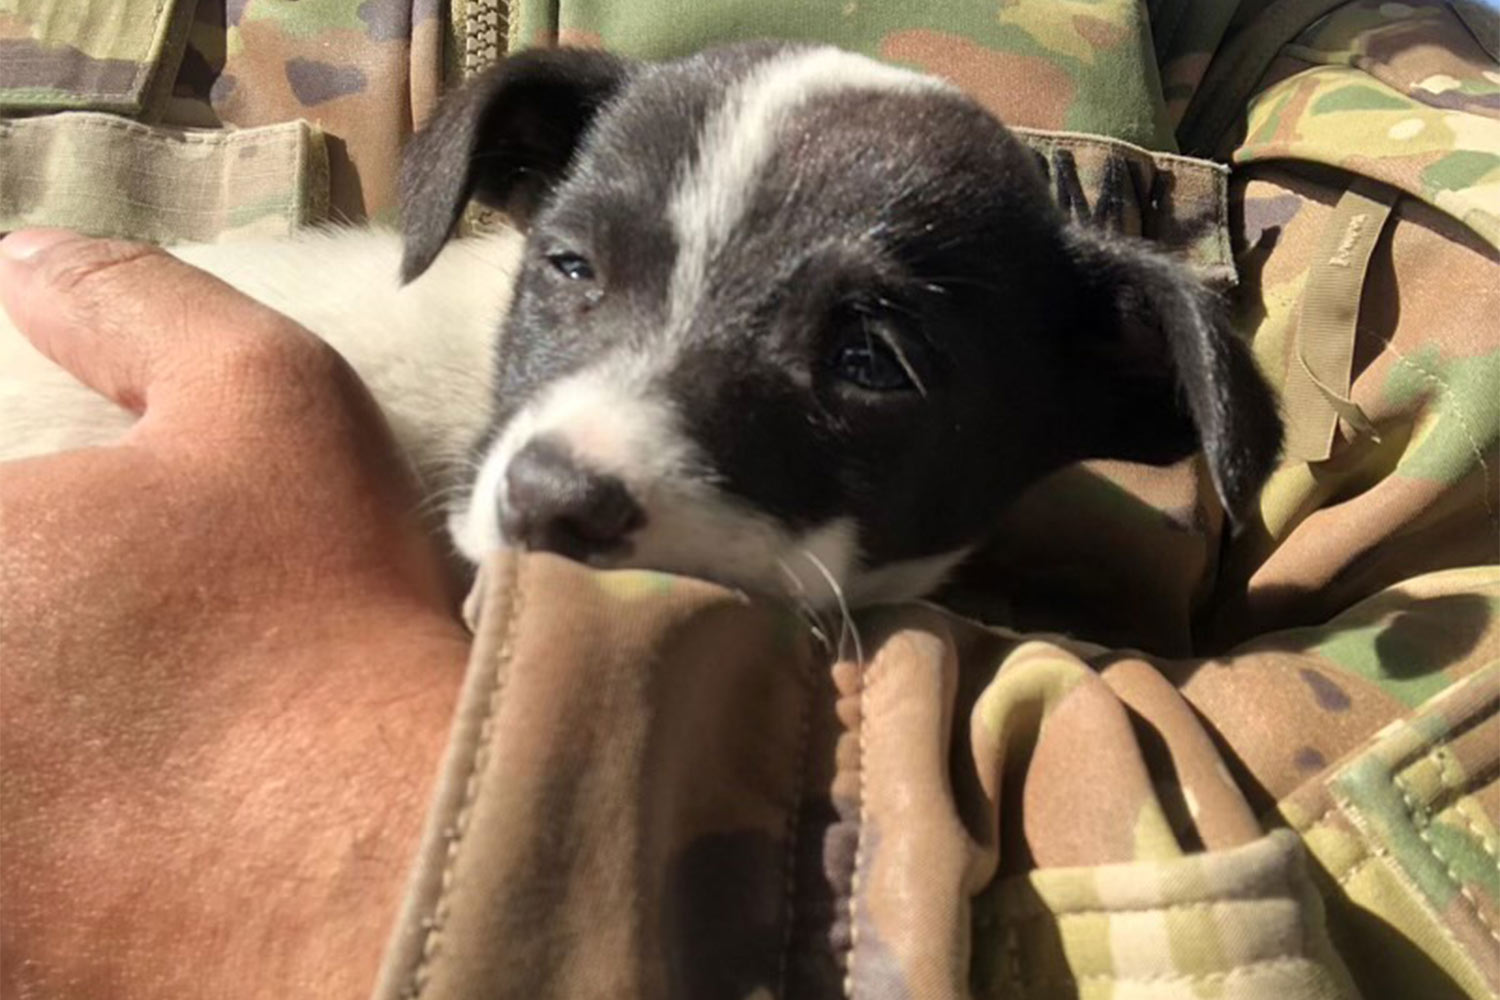 A soldier needs help bringing pup to US